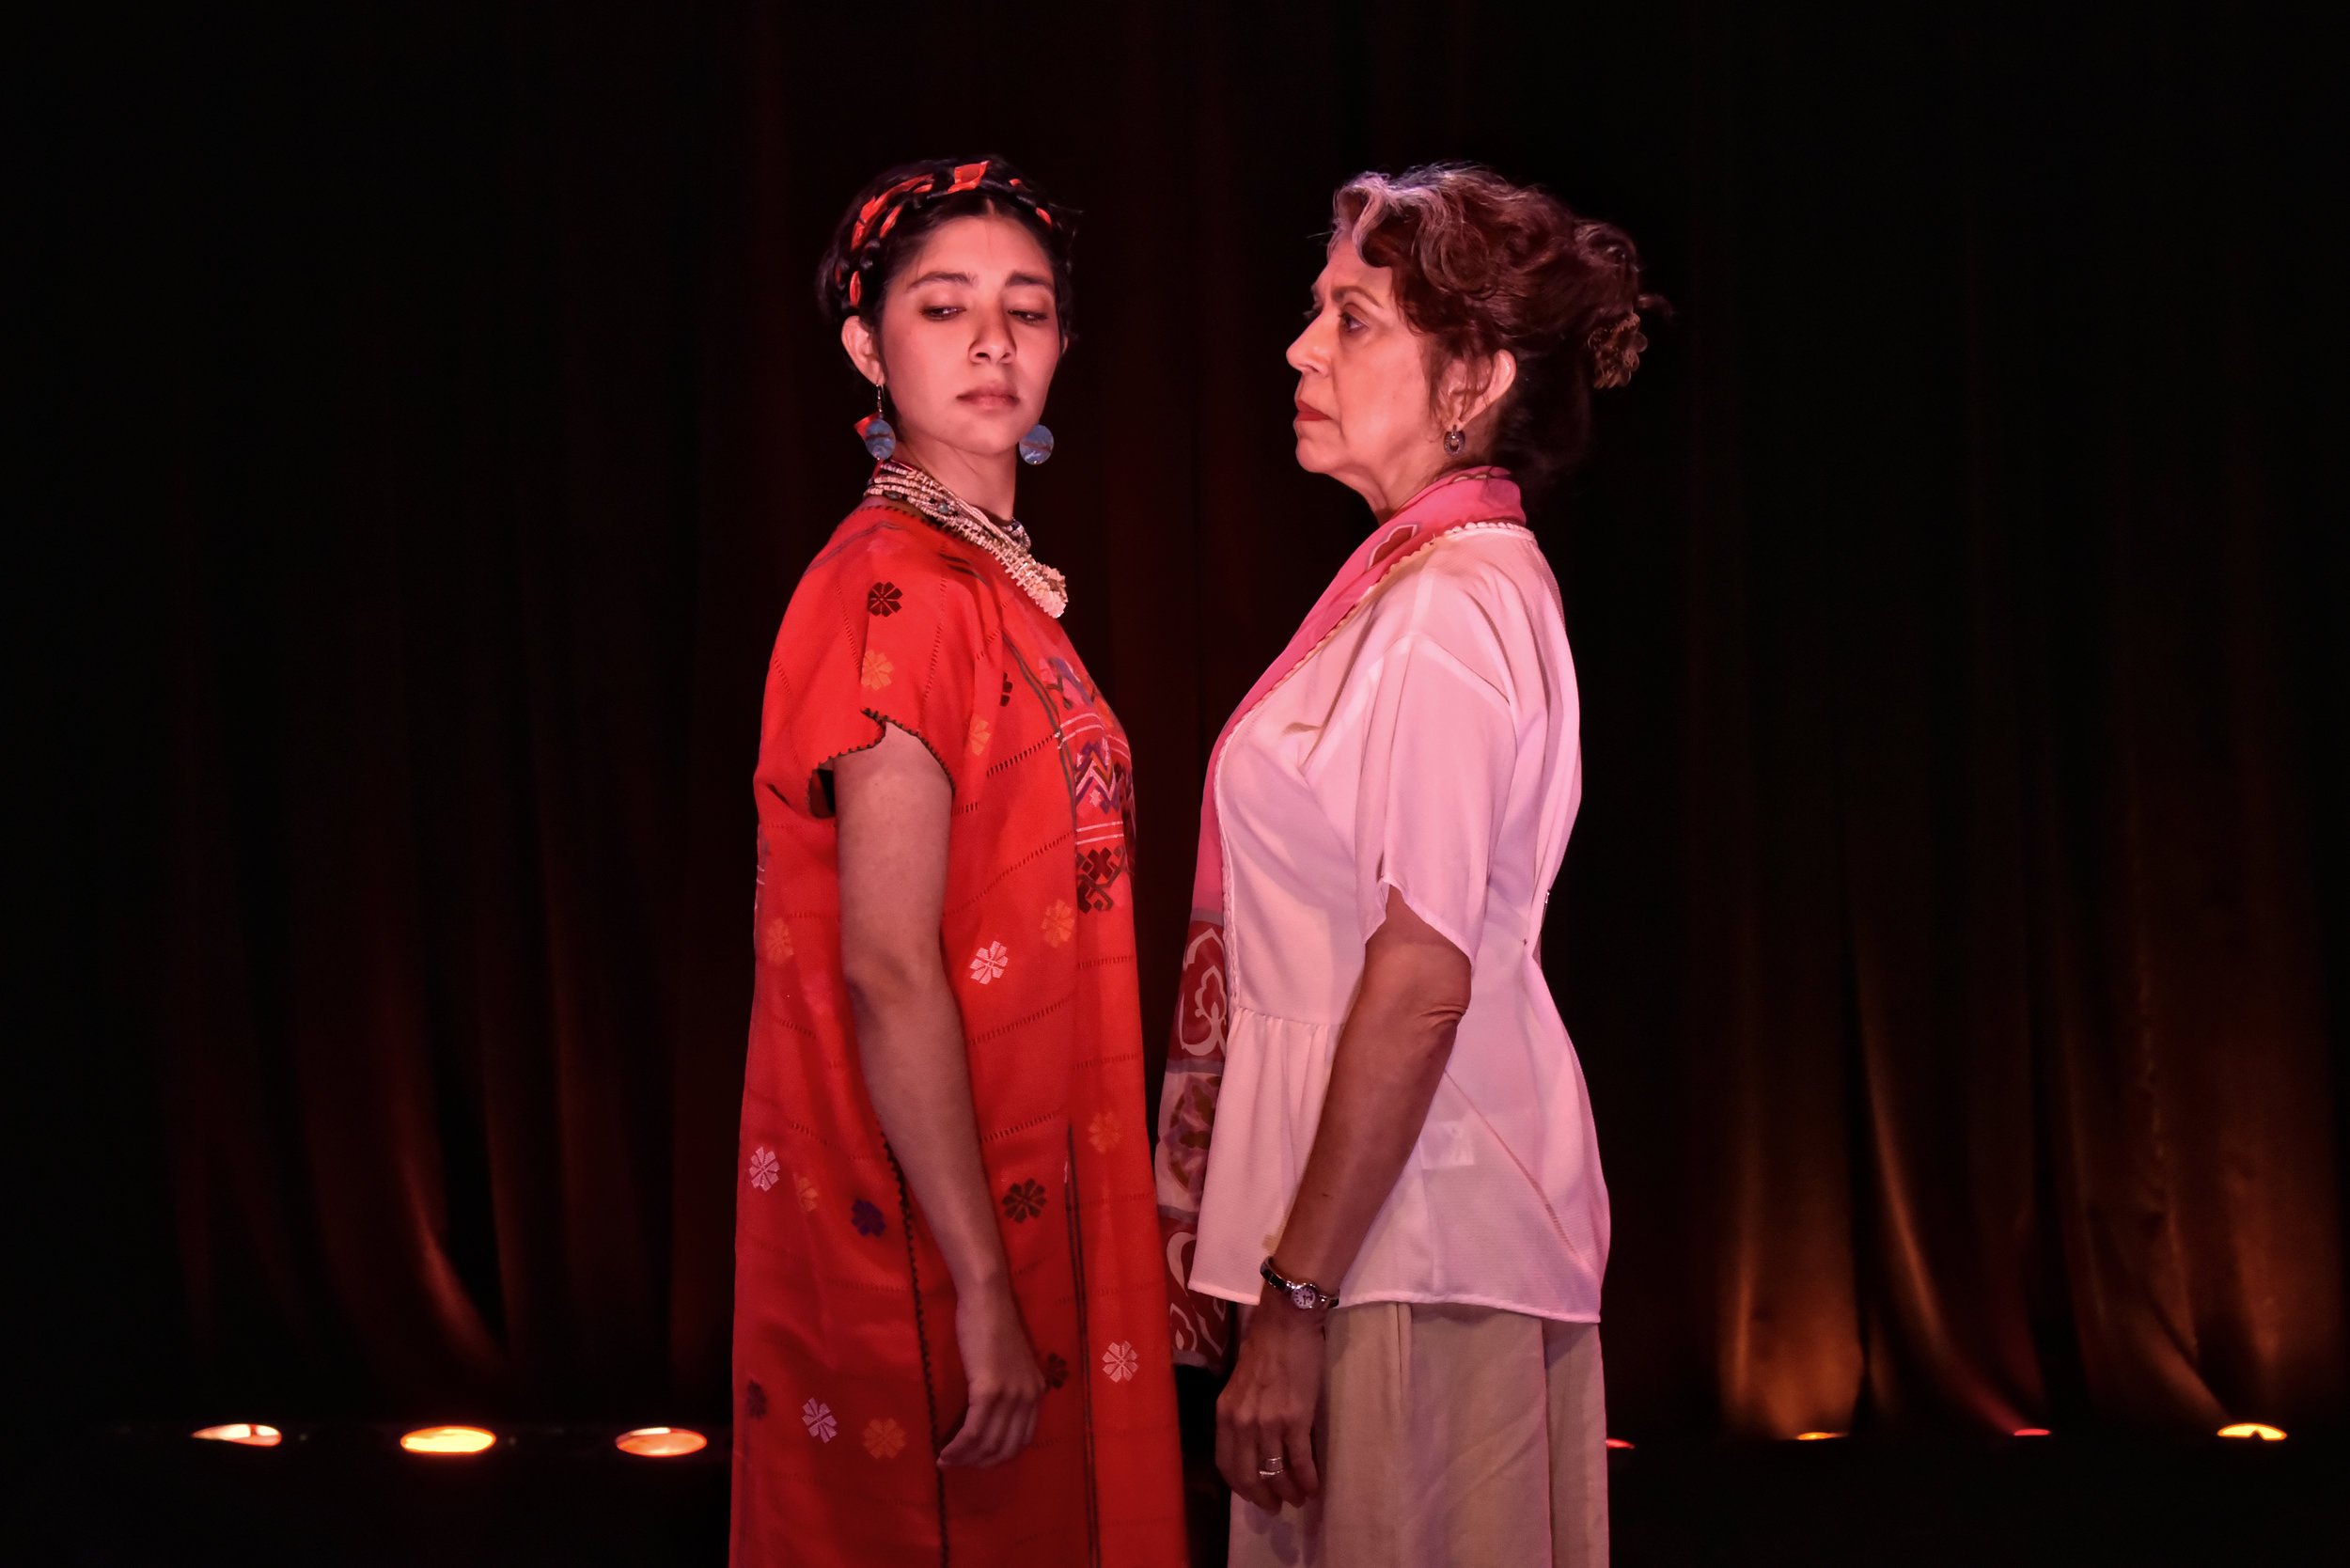 Veronica Maynez as Malinche and Rose Portillo as Peaches in the World Premiere of Mathematics of Love by Cherríe Moraga.  Photo credit Gareth Gooch.jpg